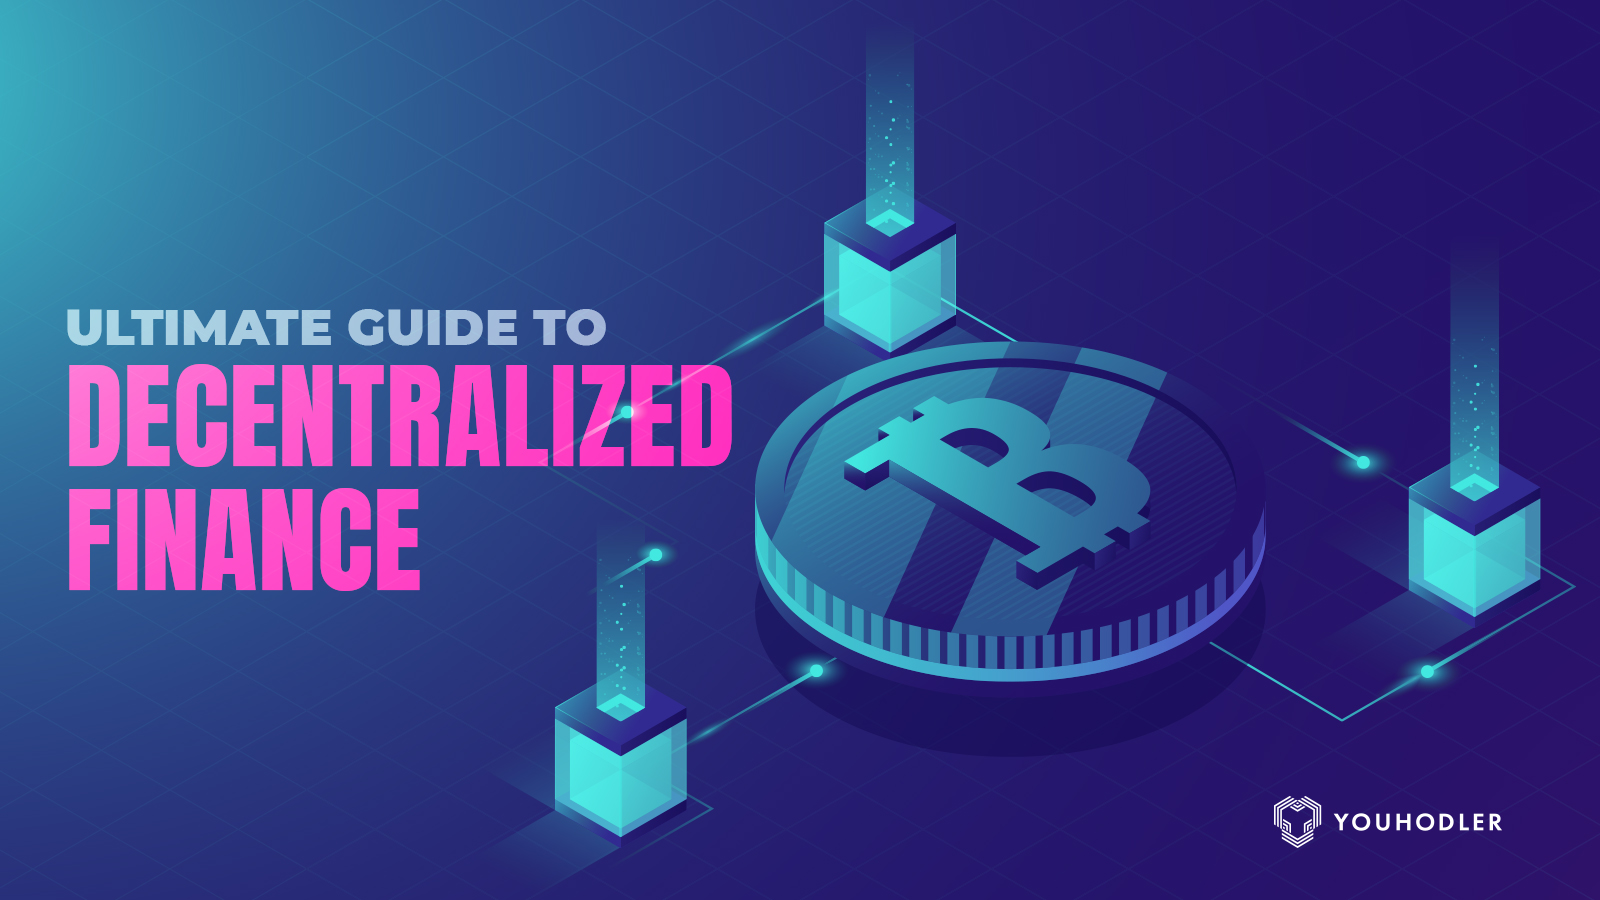 decentralized finance, defi, crypto, youhodler, borrowbtc